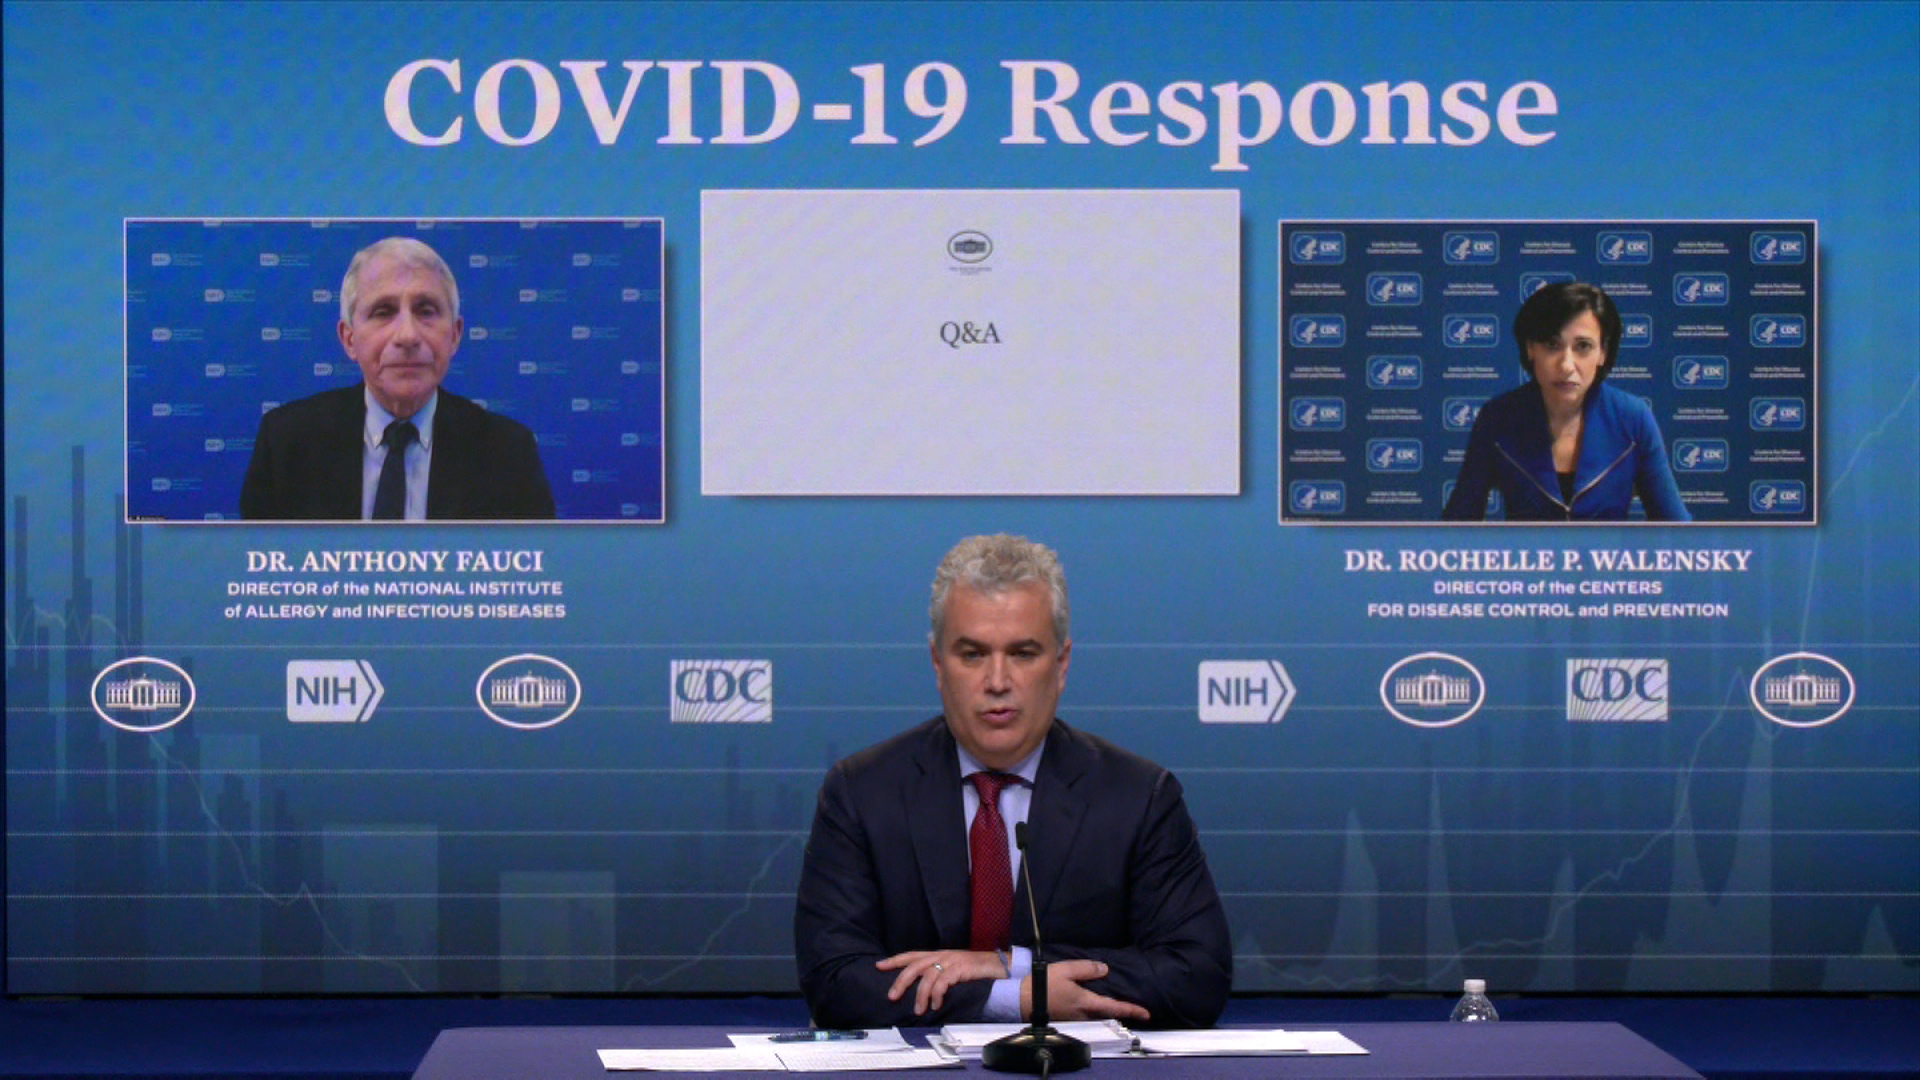 Jeff Zients, White House Covid-19 response coordinator, center, speaks during a briefing on February 24.